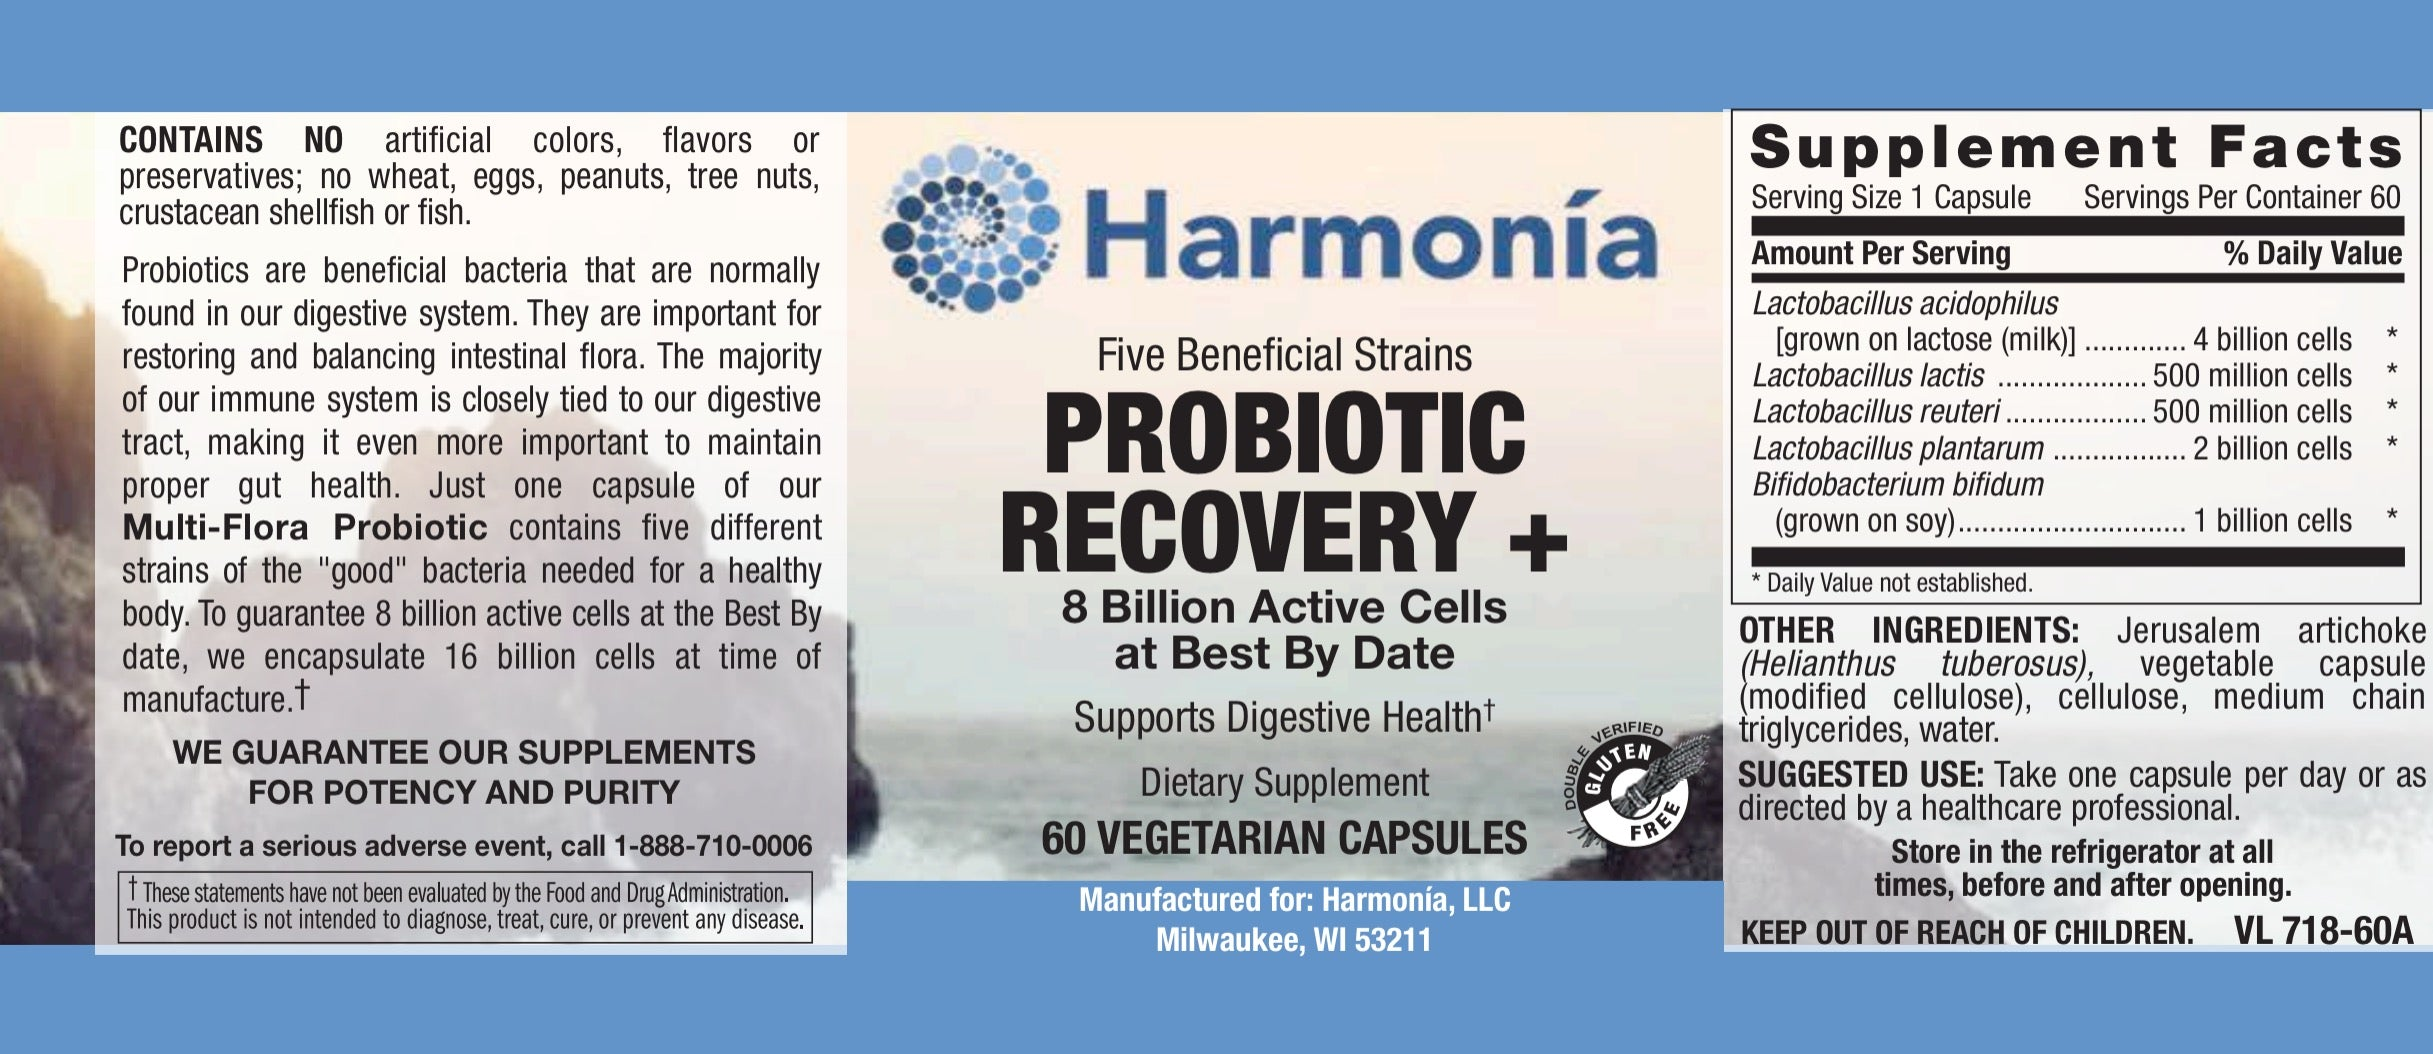 Probiotic Recovery + for Better Digestion and Immunity